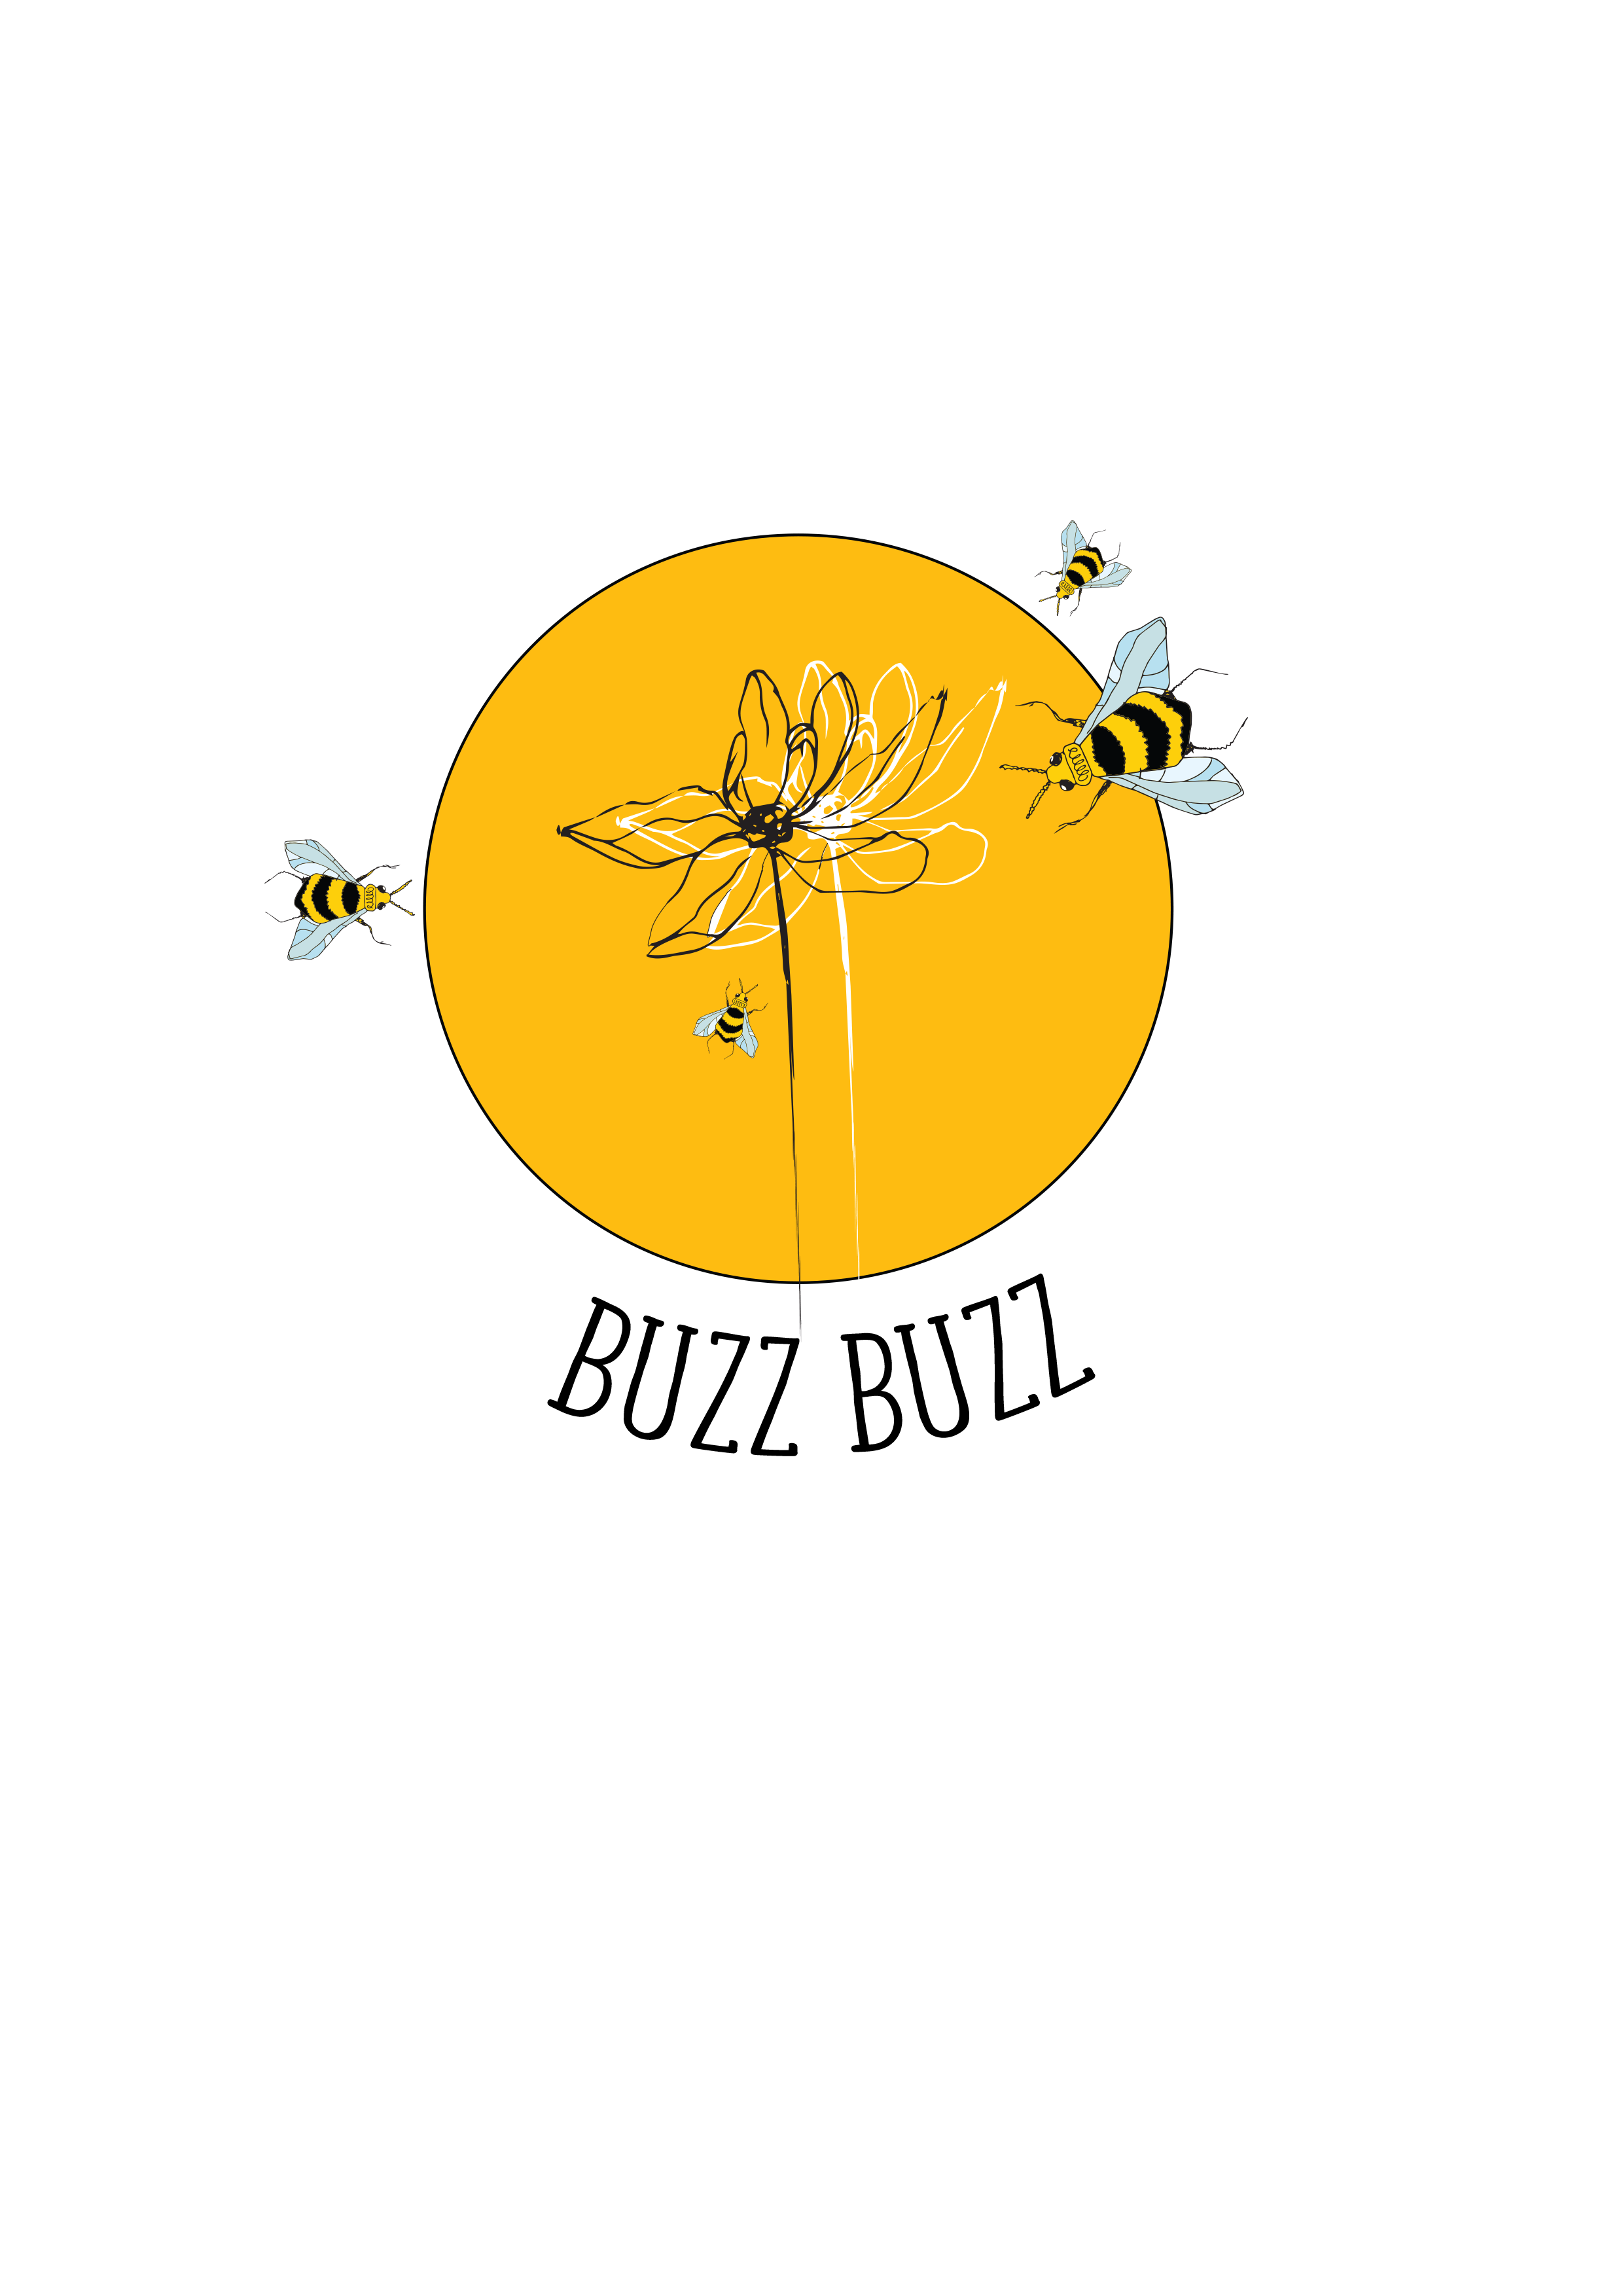 Yellow desktop backgrounds 72 images. 'Aesthetic yellow bees and flowers design' Graphic T-Shirt